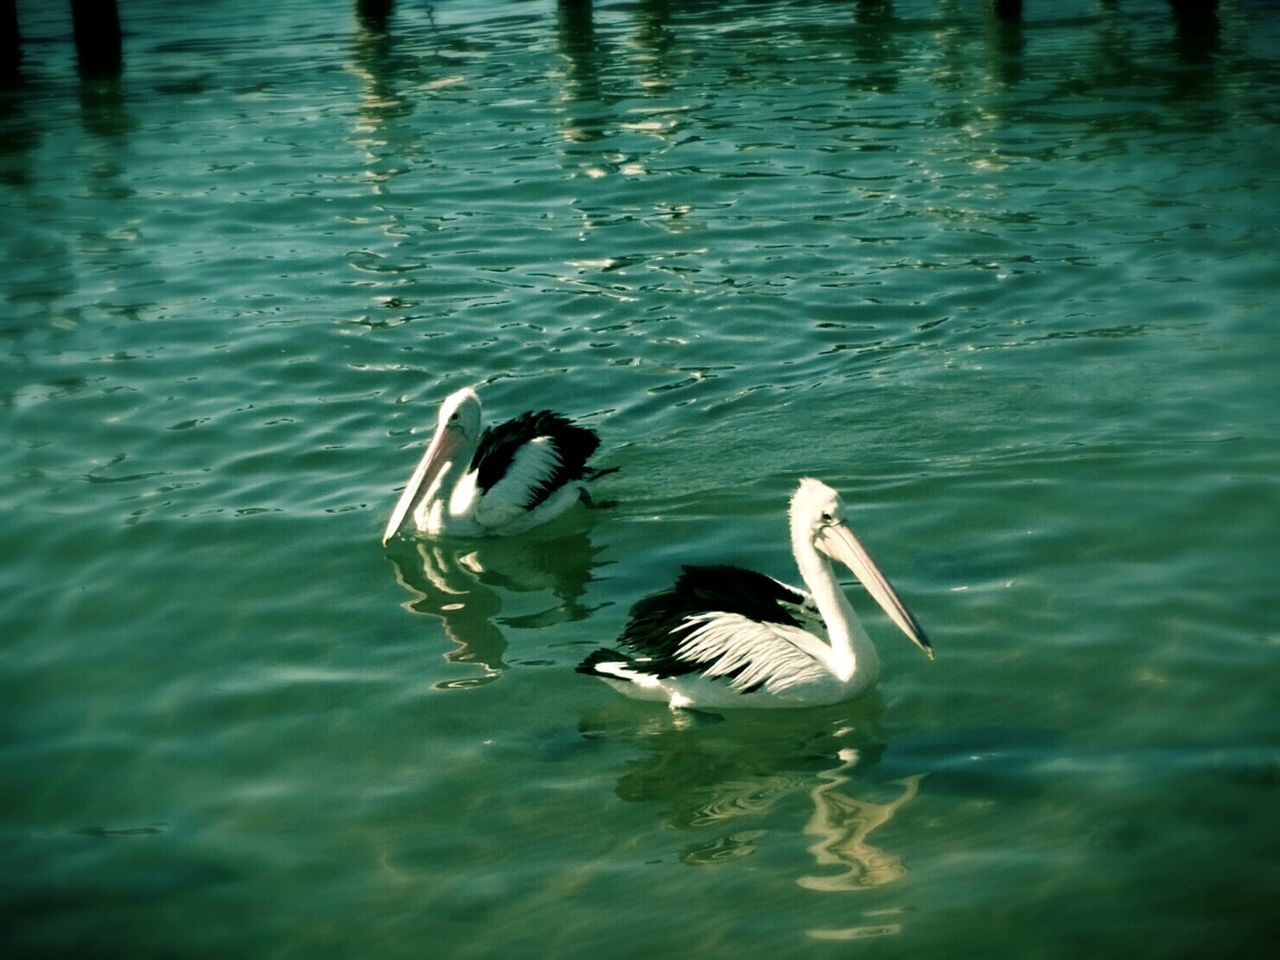 animal themes, animals in the wild, water, bird, swimming, lake, waterfront, animal wildlife, nature, water bird, day, duck, no people, outdoors, togetherness, floating in water, beauty in nature, swan